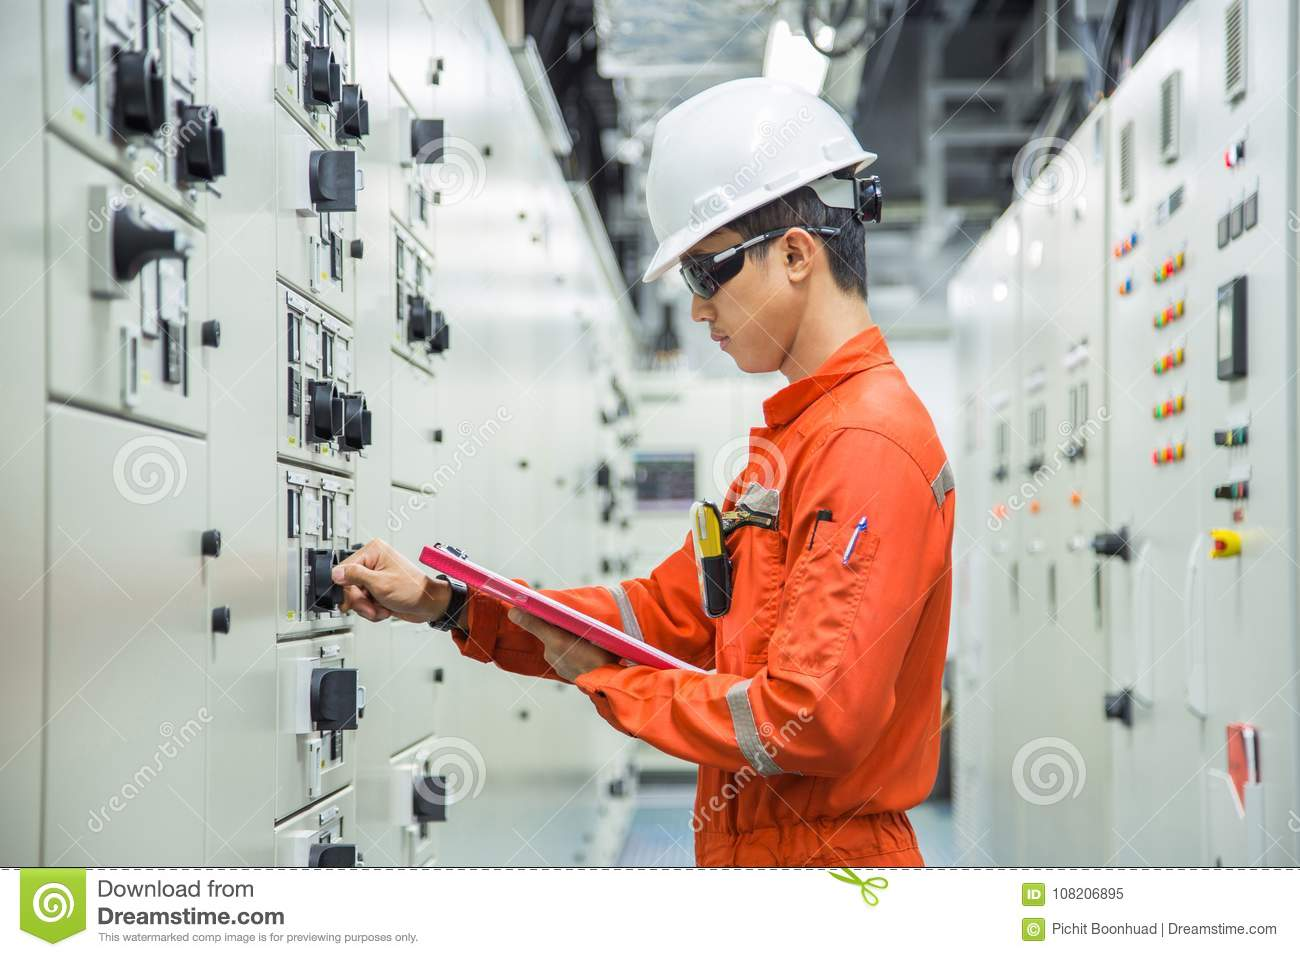 Electrical and Instrument technician checking electrical control board of motor starting system in switch gear room